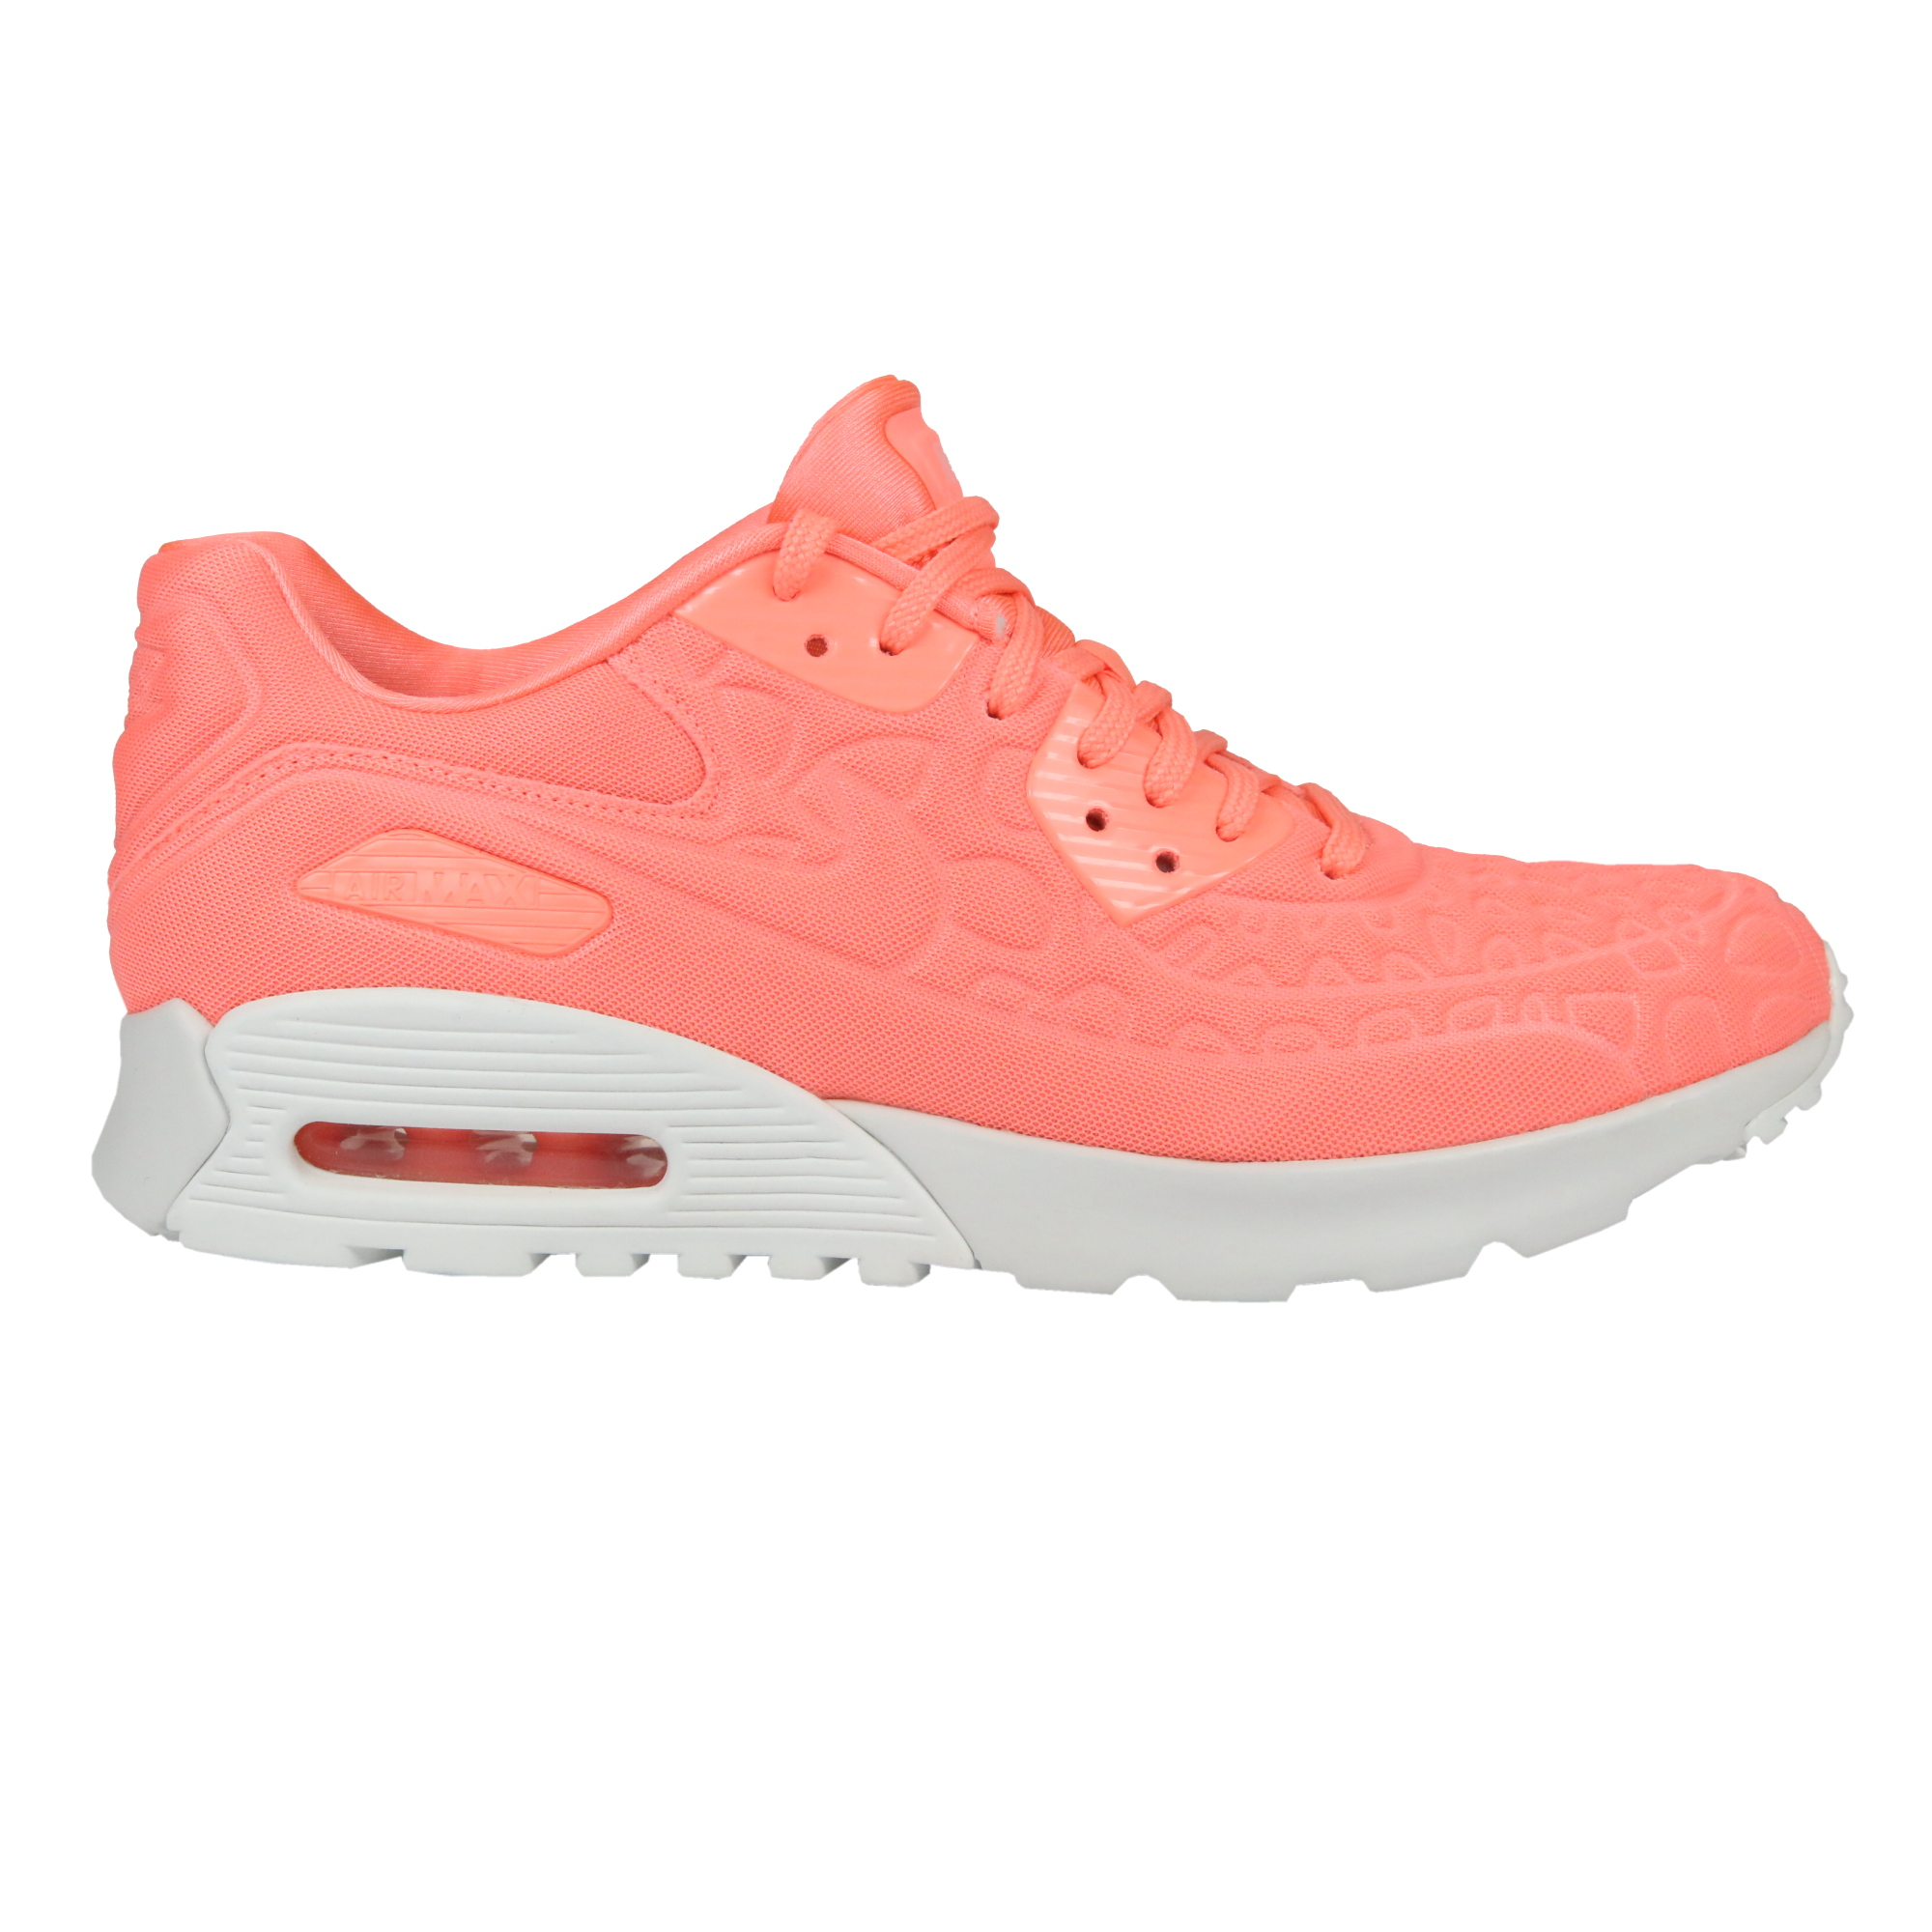 nike air max 90 ultra plush atomic pink schuhe turnschuhe. Black Bedroom Furniture Sets. Home Design Ideas